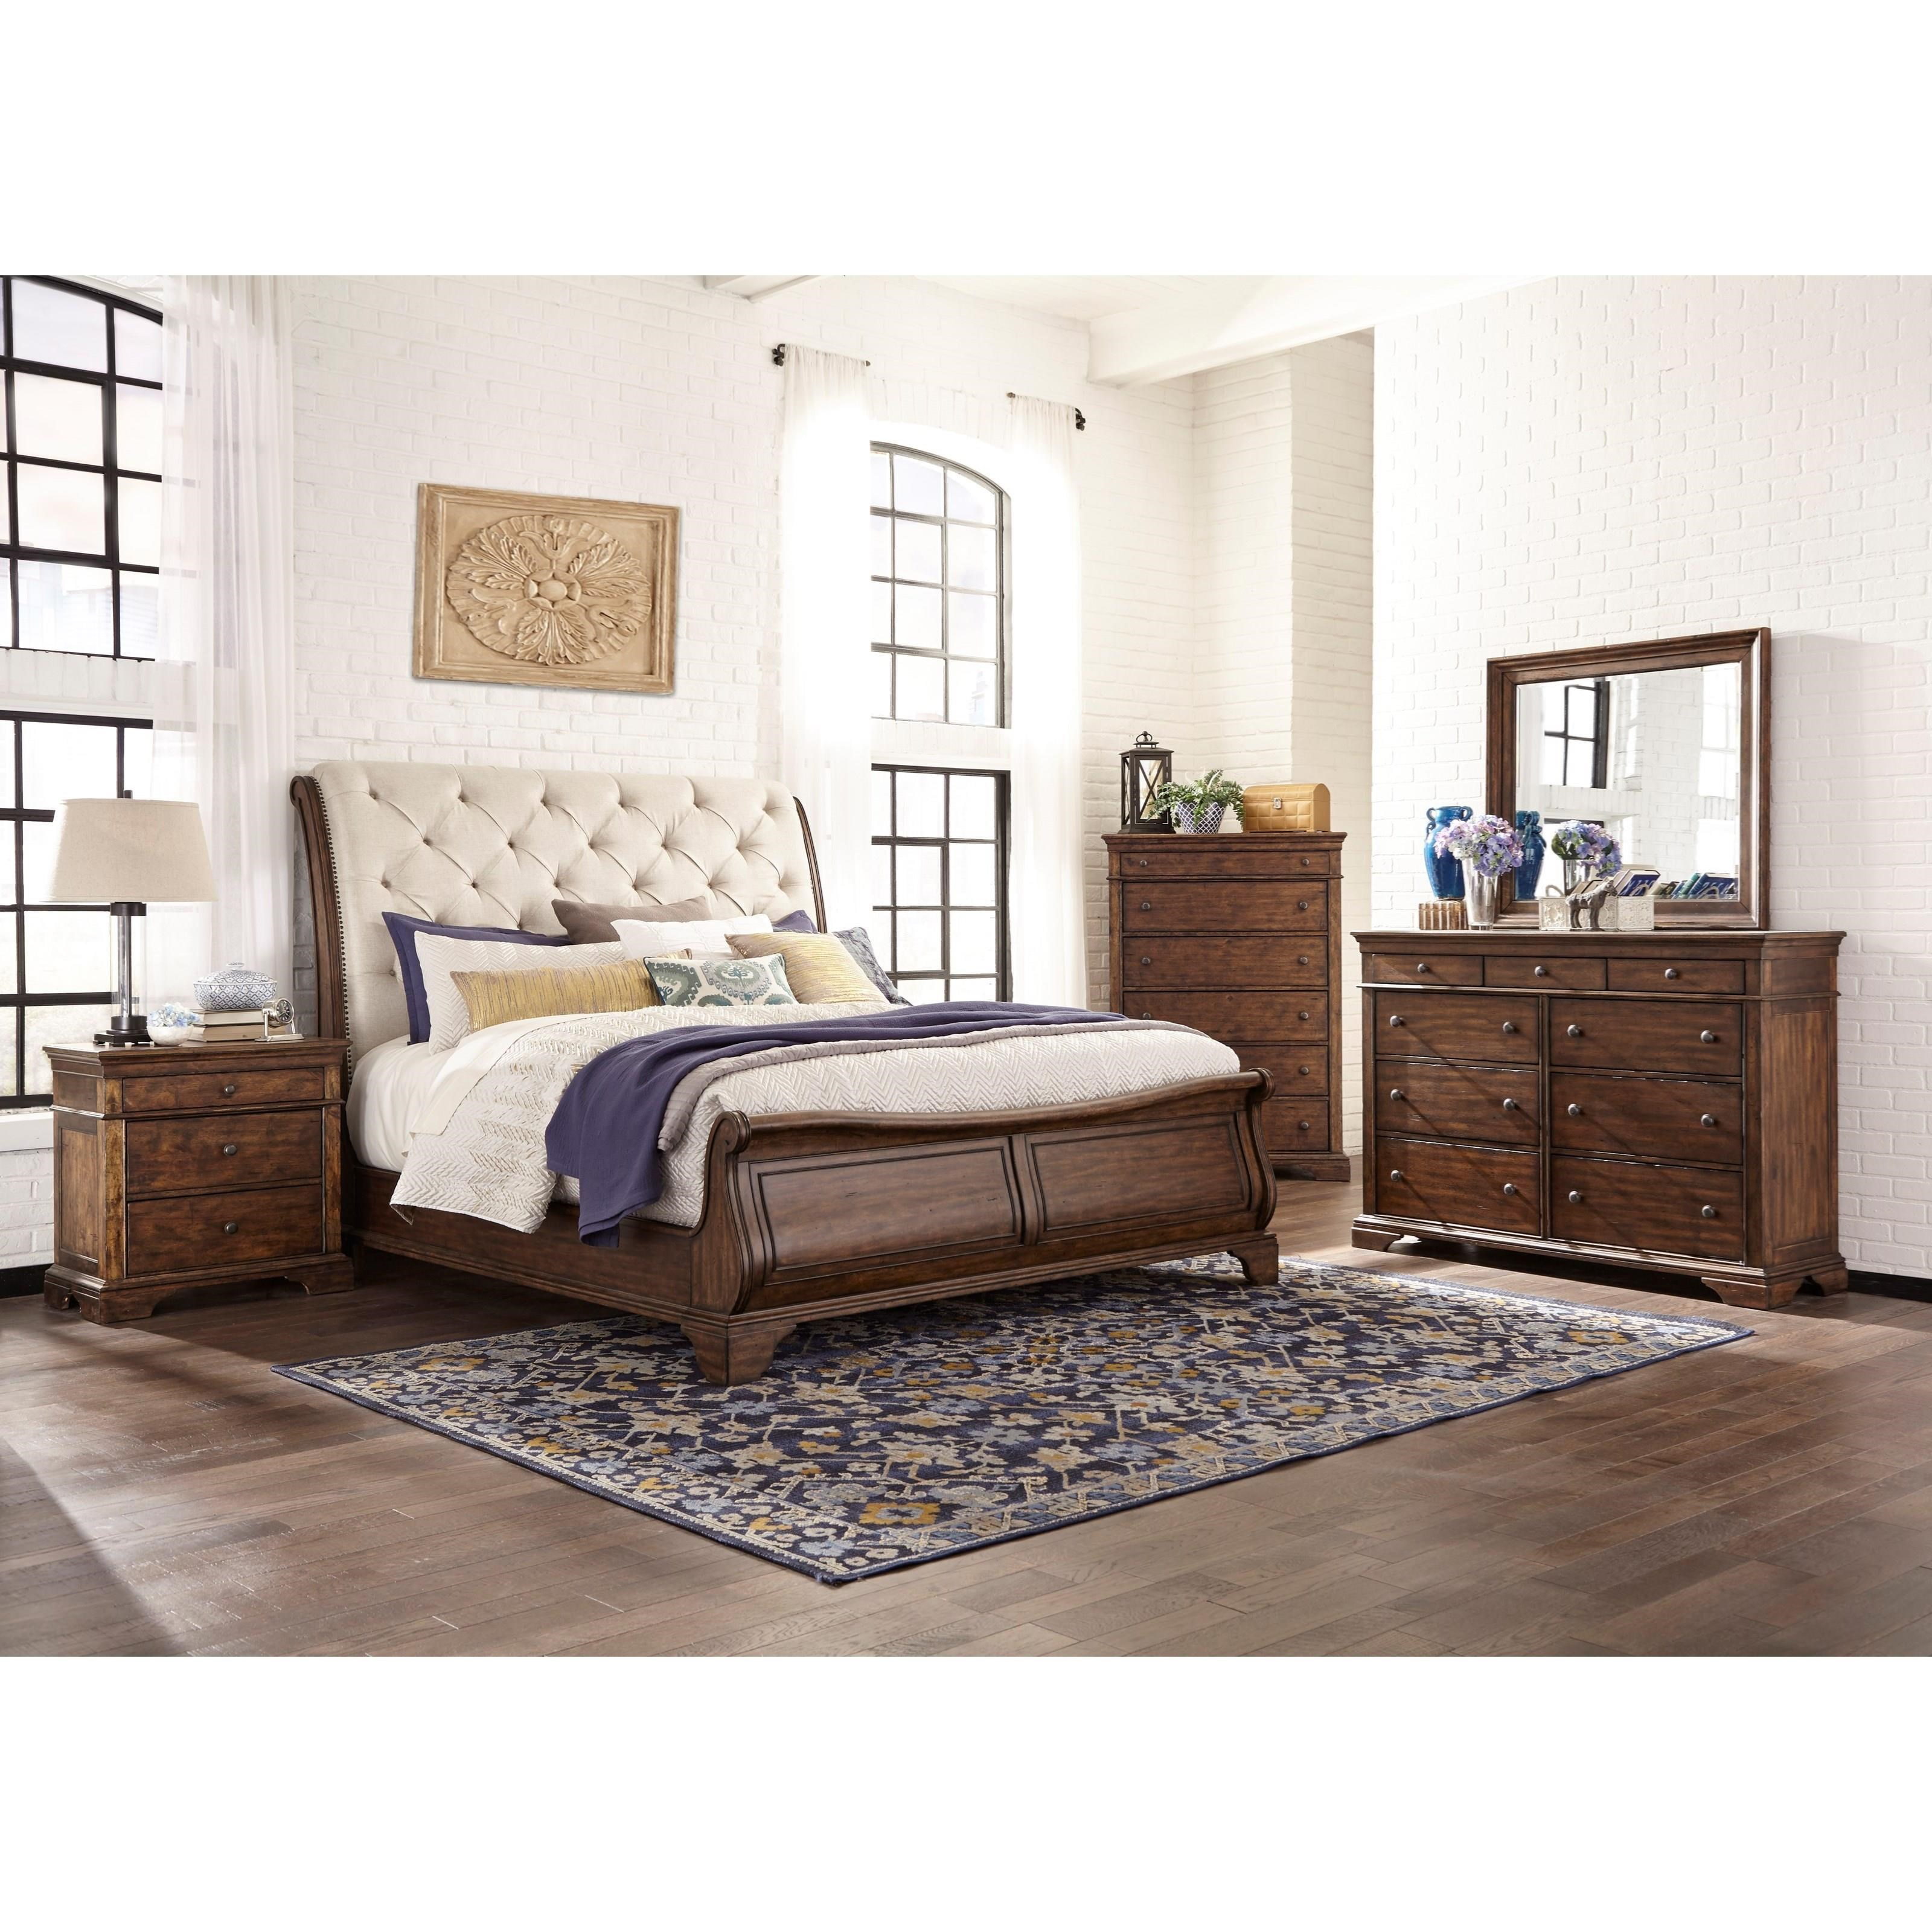 Trisha Yearwood Home 3 Piece Bedroom Set by Trisha Yearwood Home Collection by Klaussner at Darvin Furniture